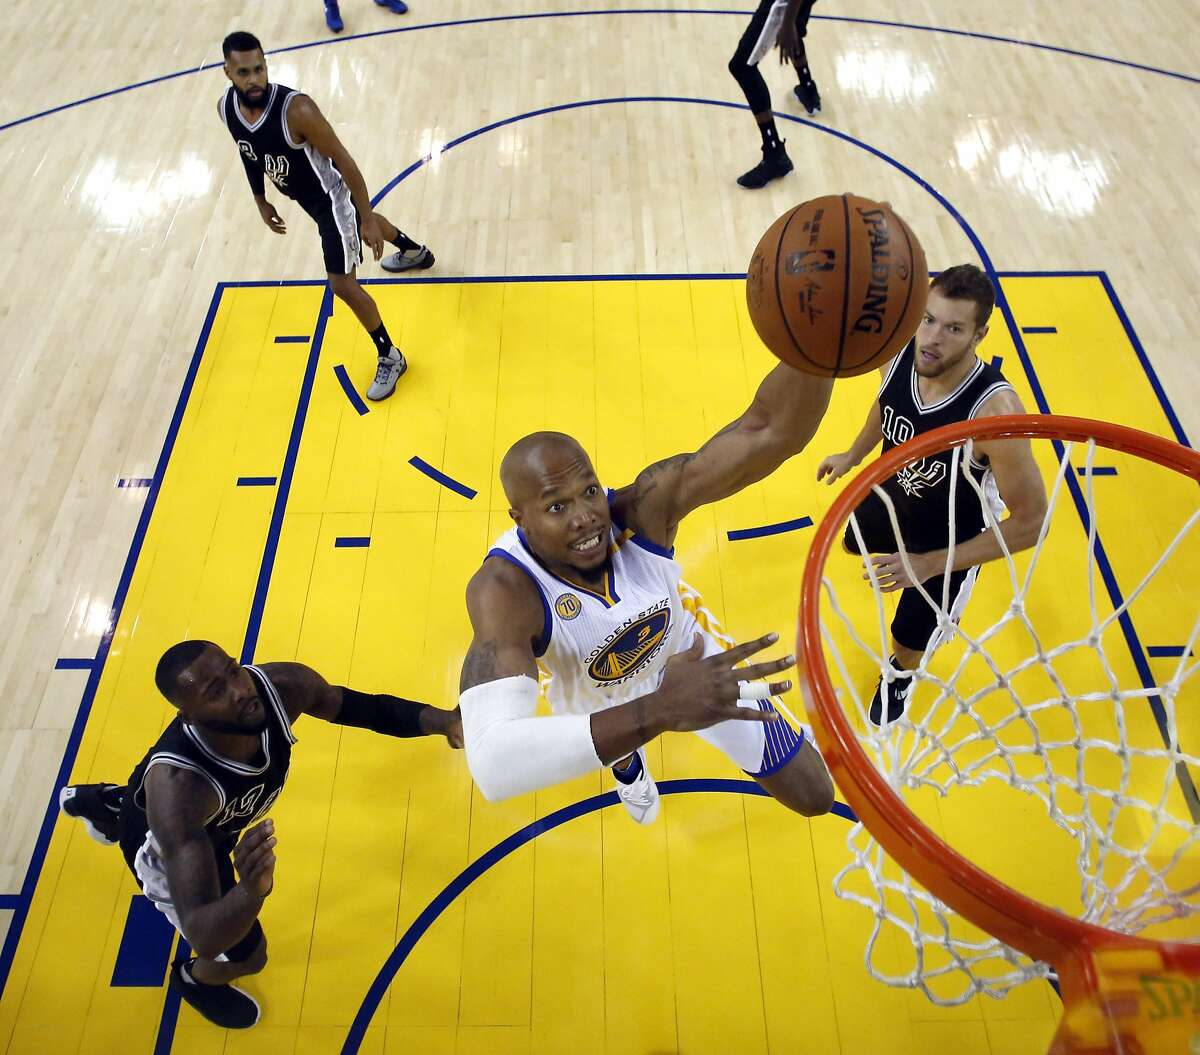 David West (3) goes up for a dunk in the first half as the Golden State Warriors played the San Antonio Spurs in their season opener at Oracle Arena in Oakland, Calif., on Sunday, October 30, 2016.